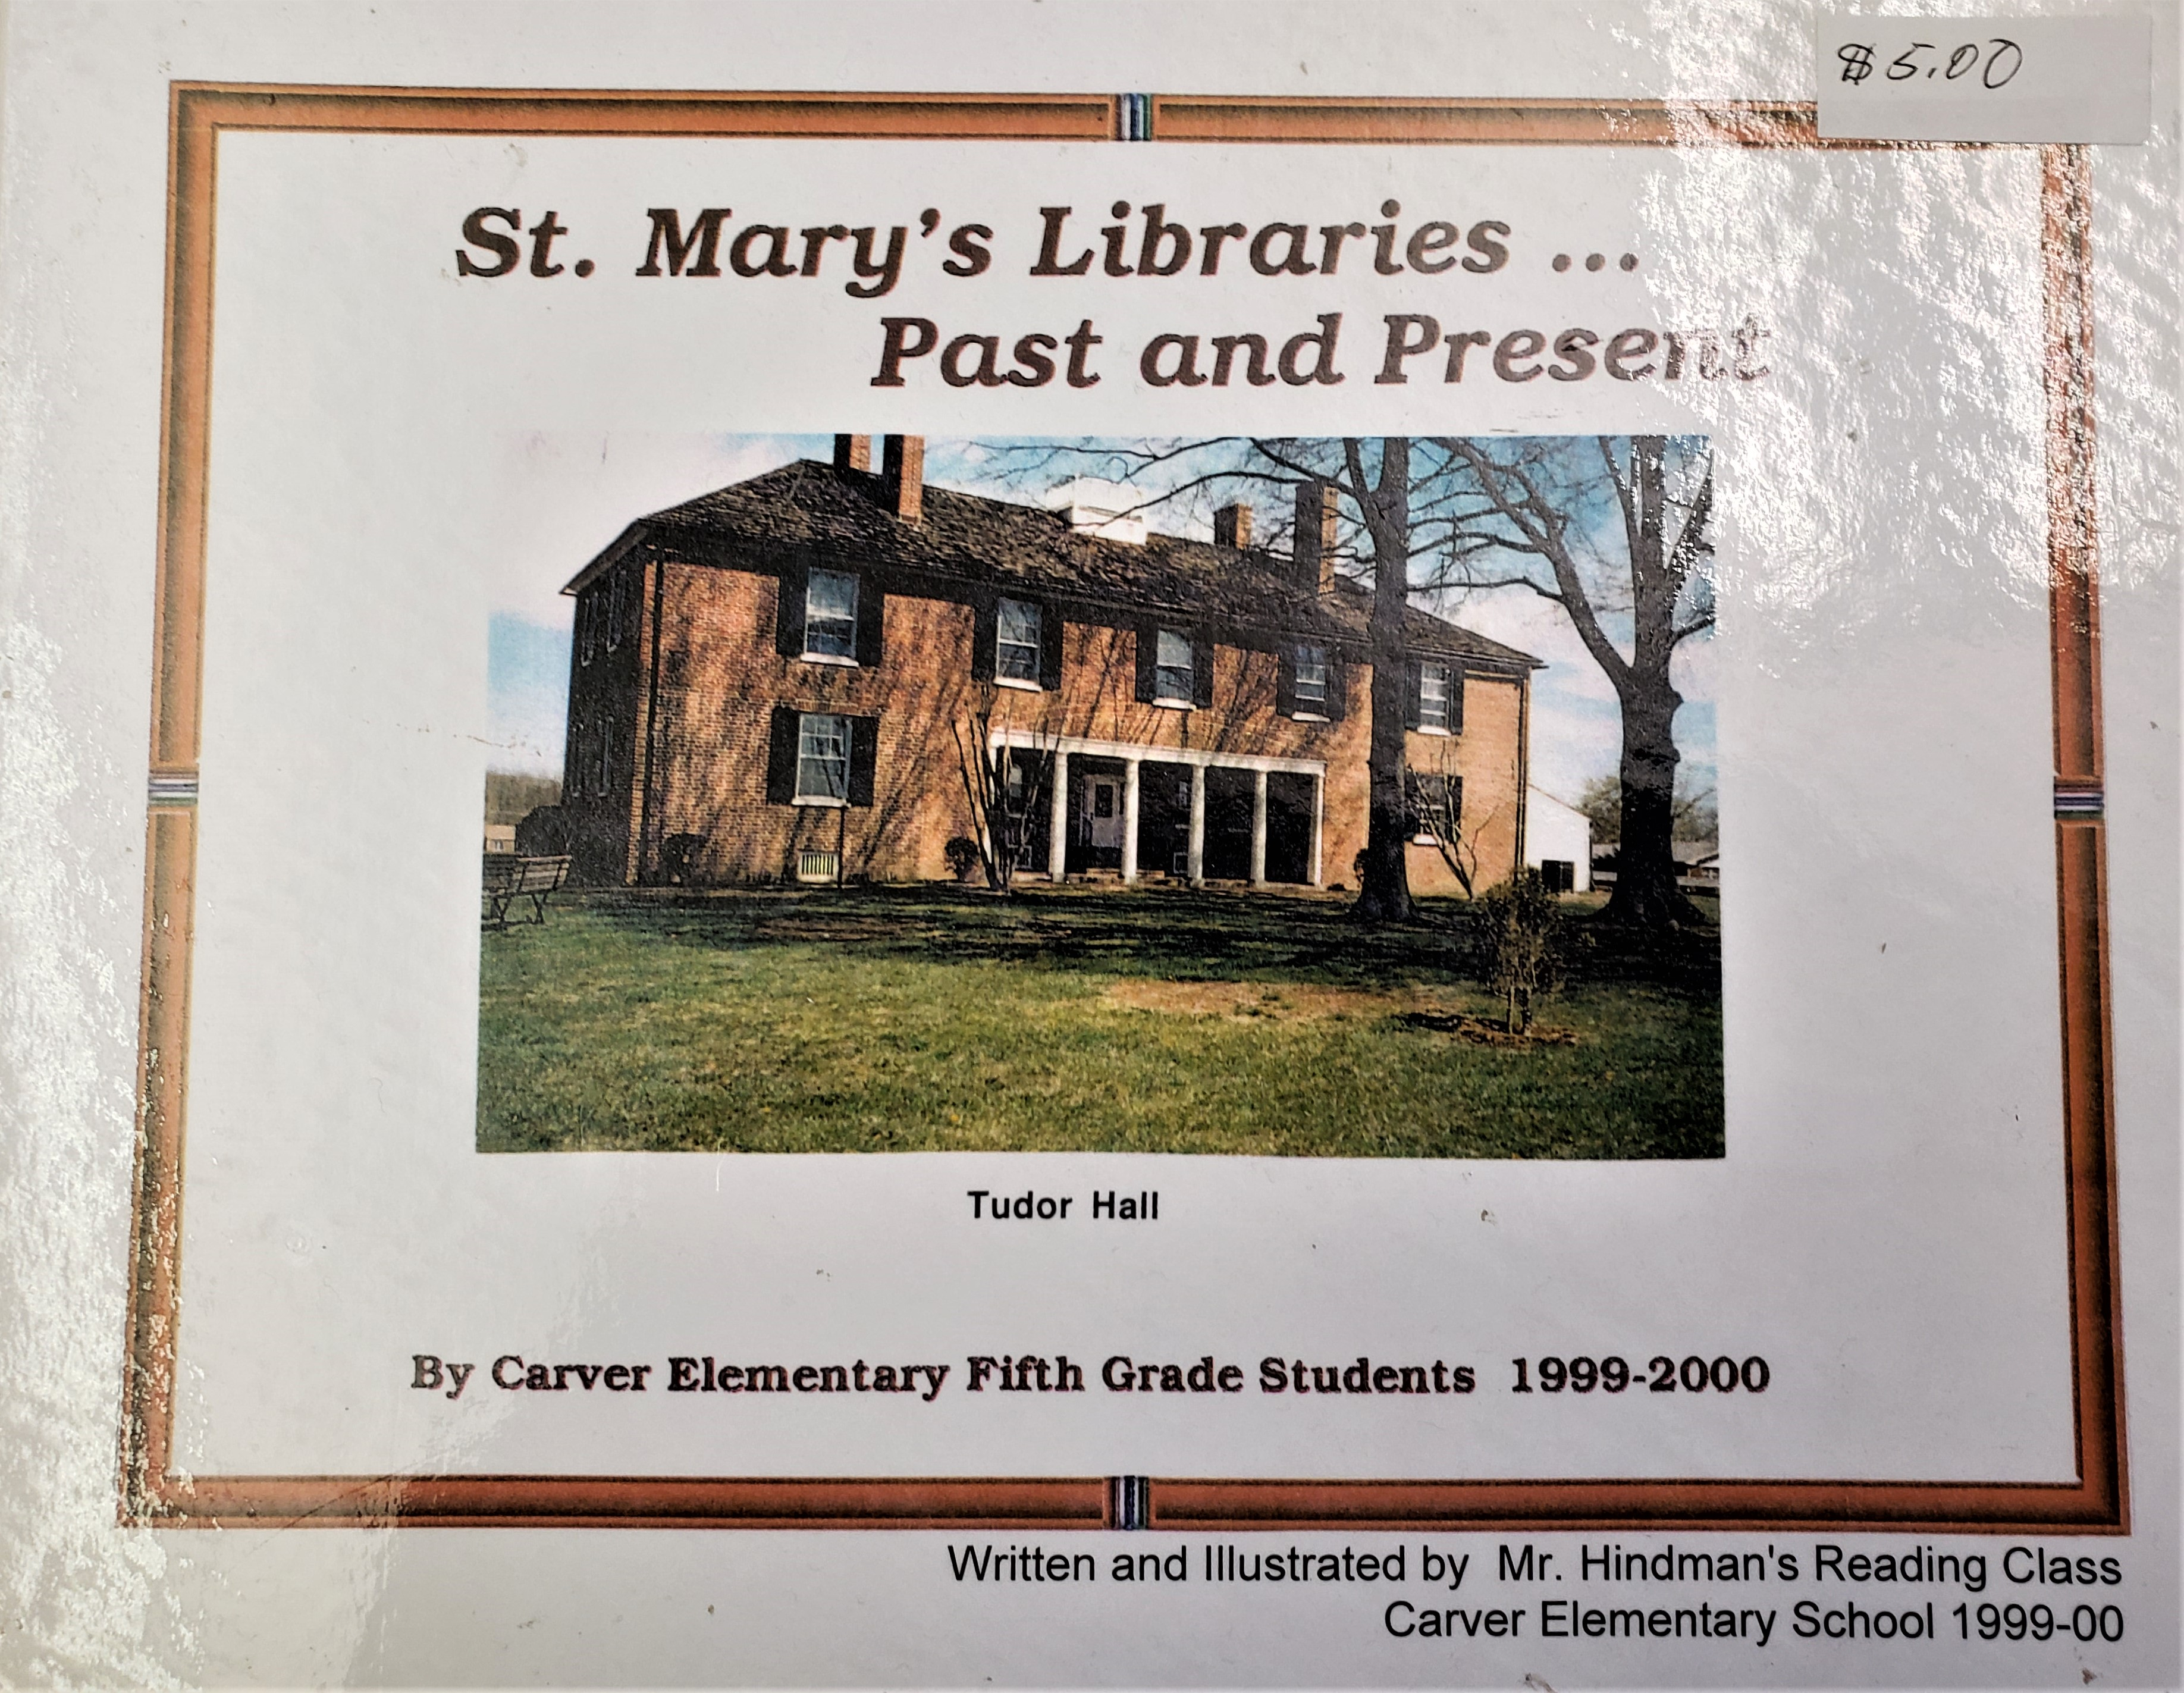 St Mary's Libraries Past and Present